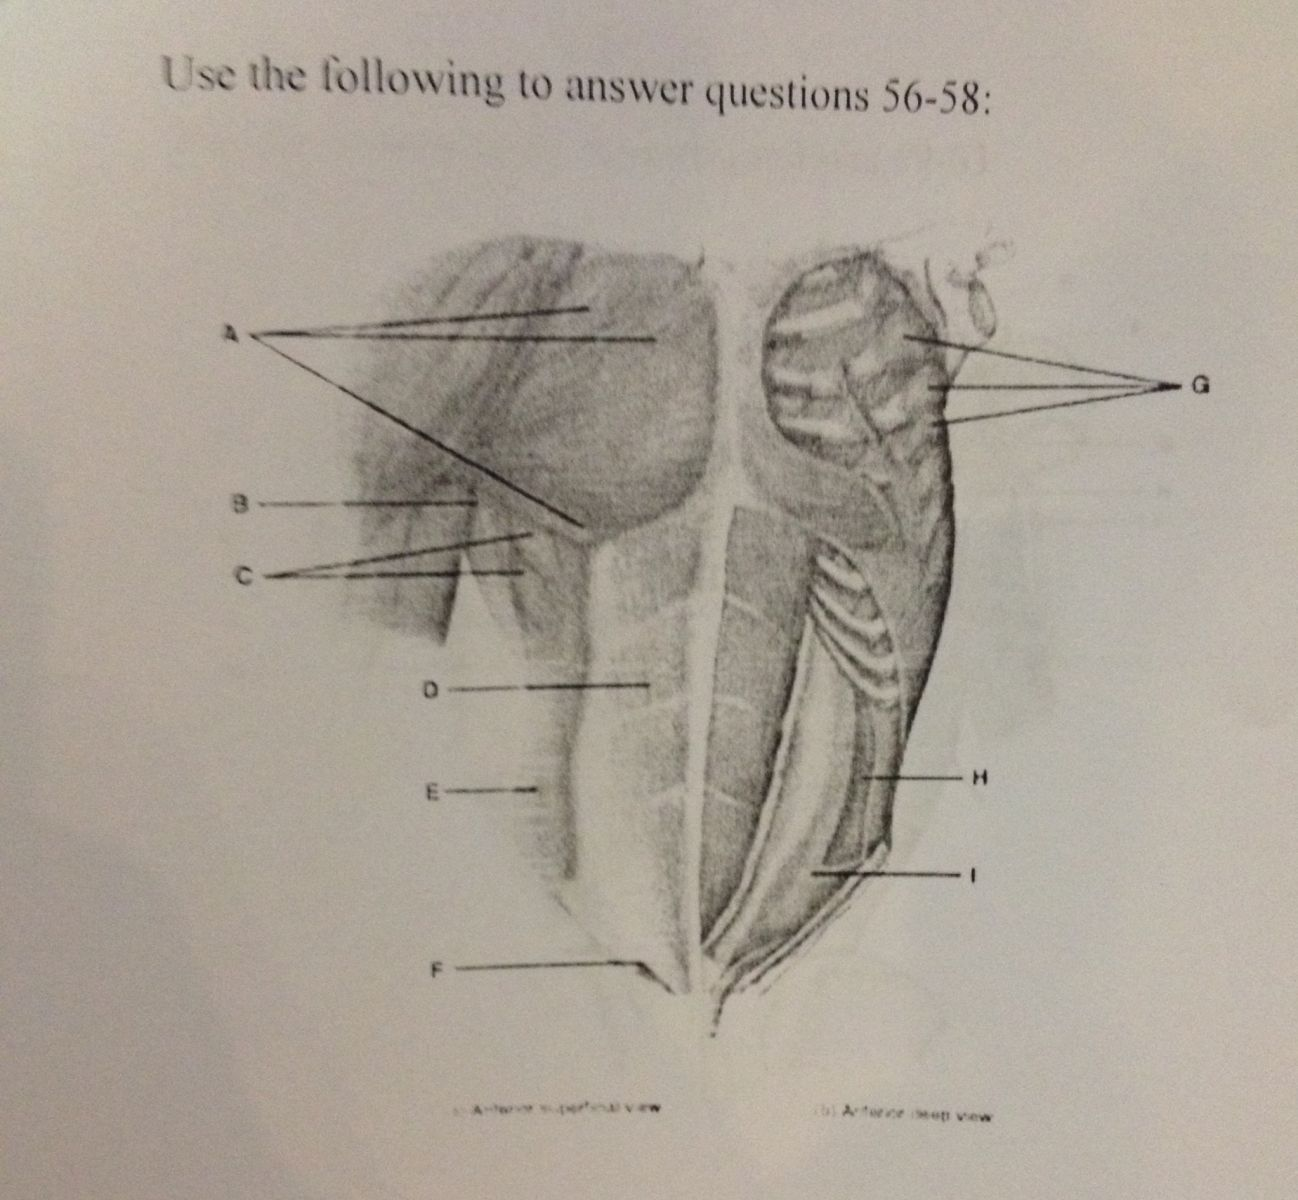 Großzügig Anatomy And Physiology Exam 3 Answers Fotos - Menschliche ...